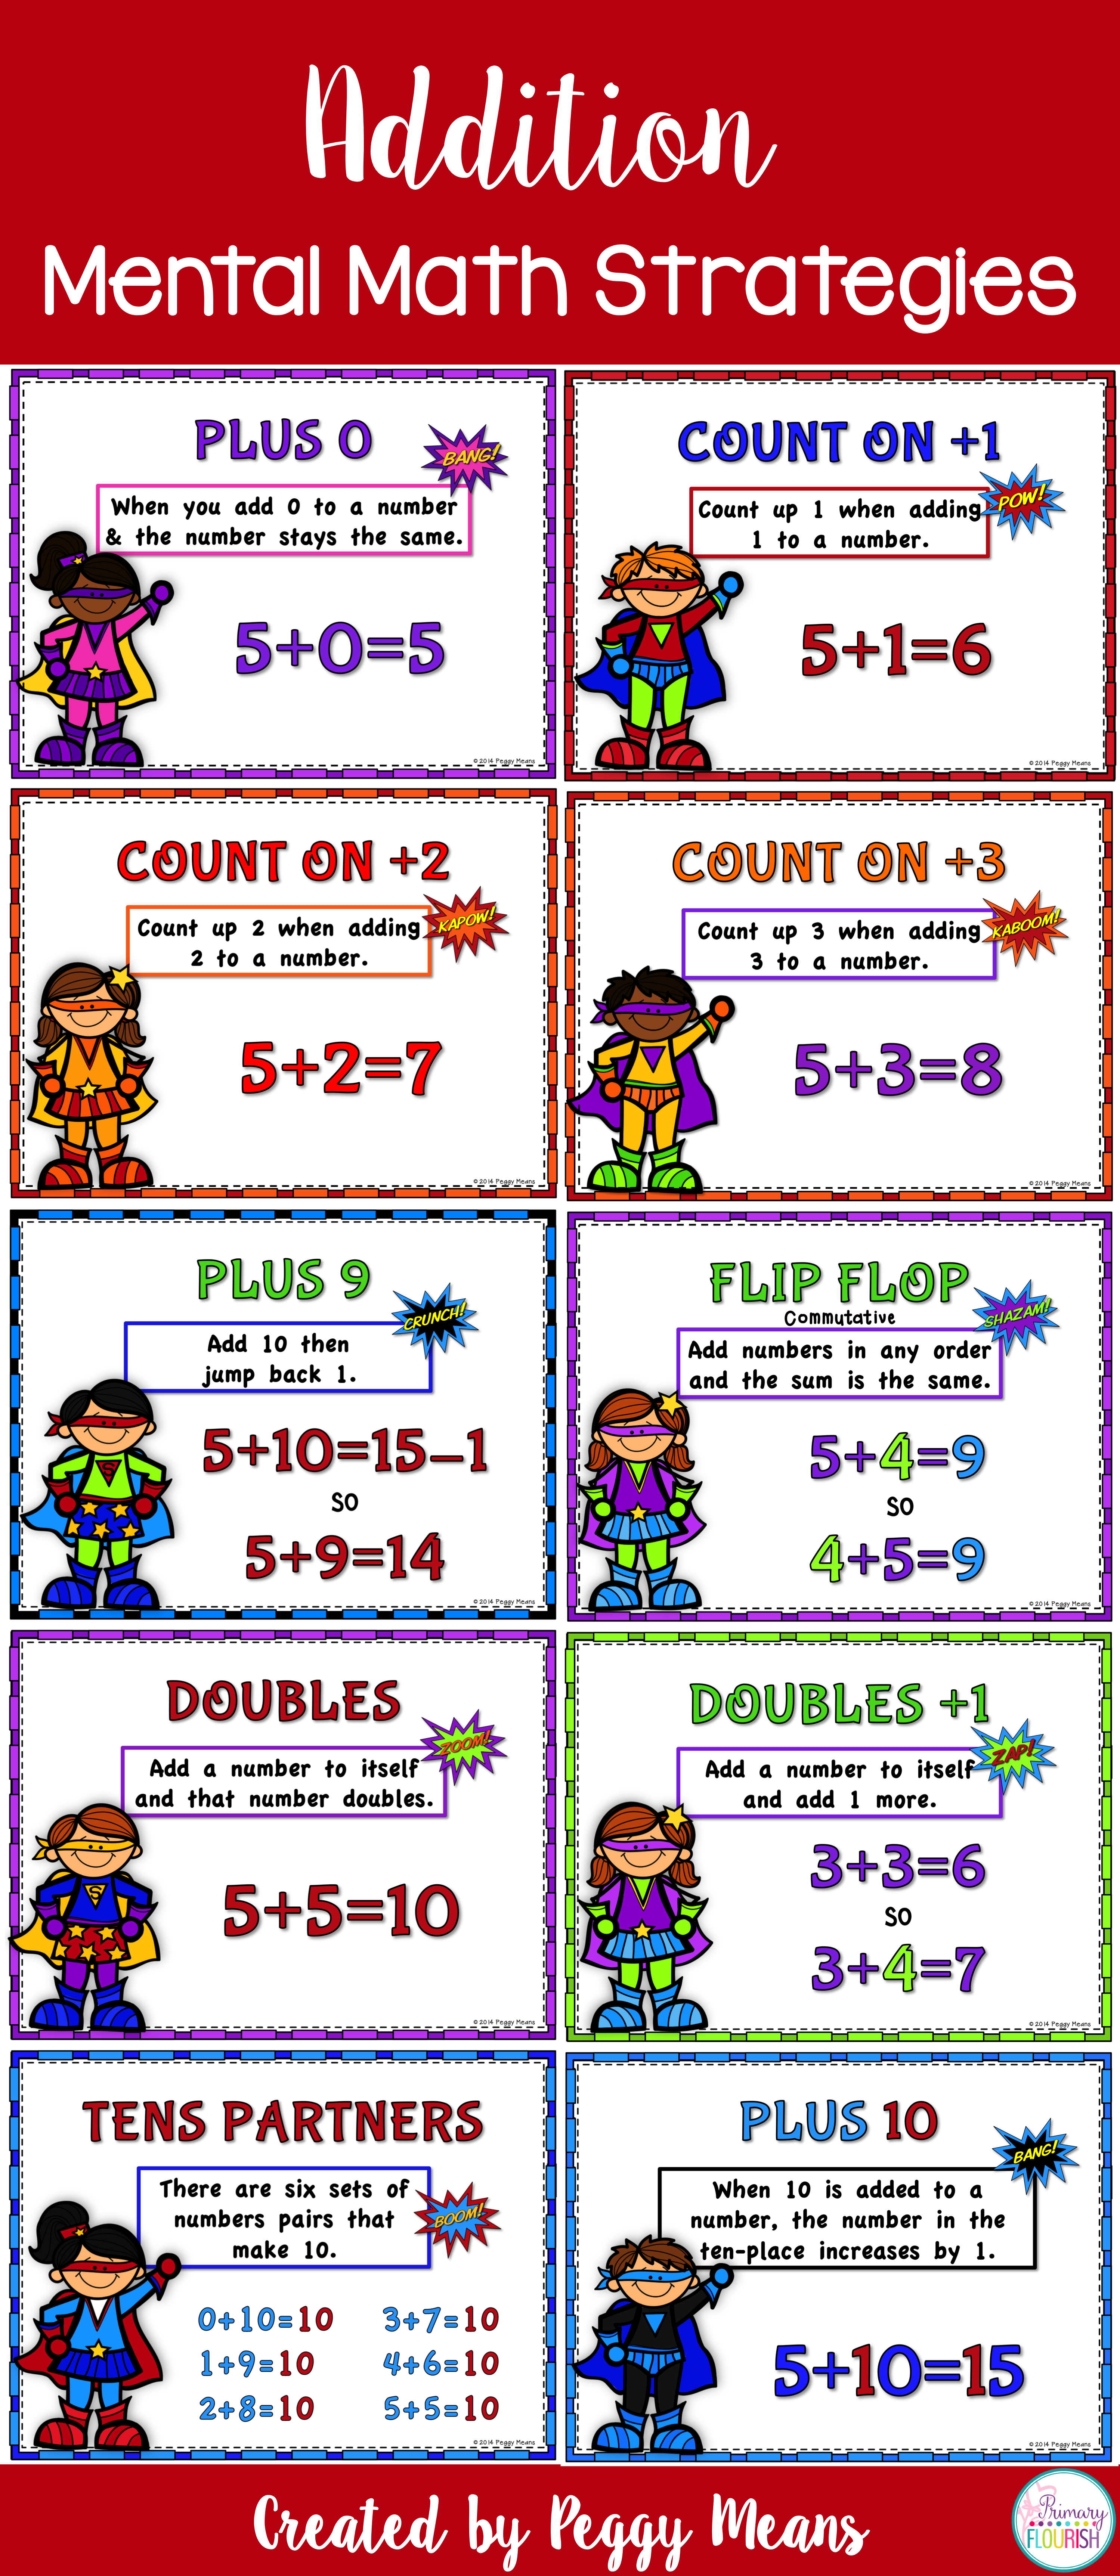 Addition Mental Math Strategy Posters